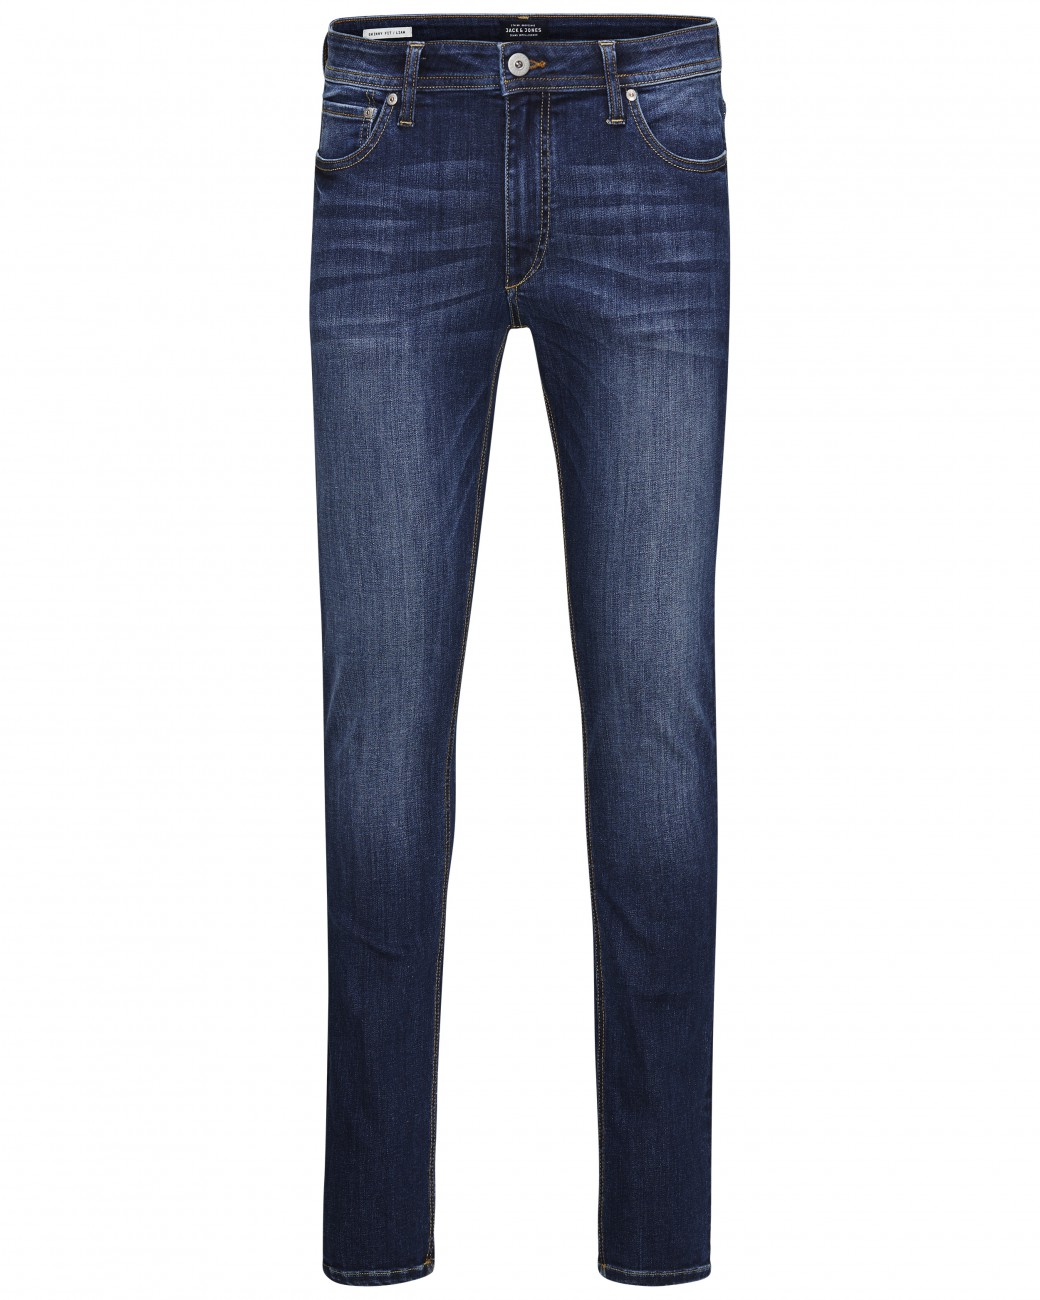 Jjoriginal Blue Denim 014 Jones Jackamp; Jeans Jjiliam Fit Herren Skinny Am Lid Blau OXuPZikTw